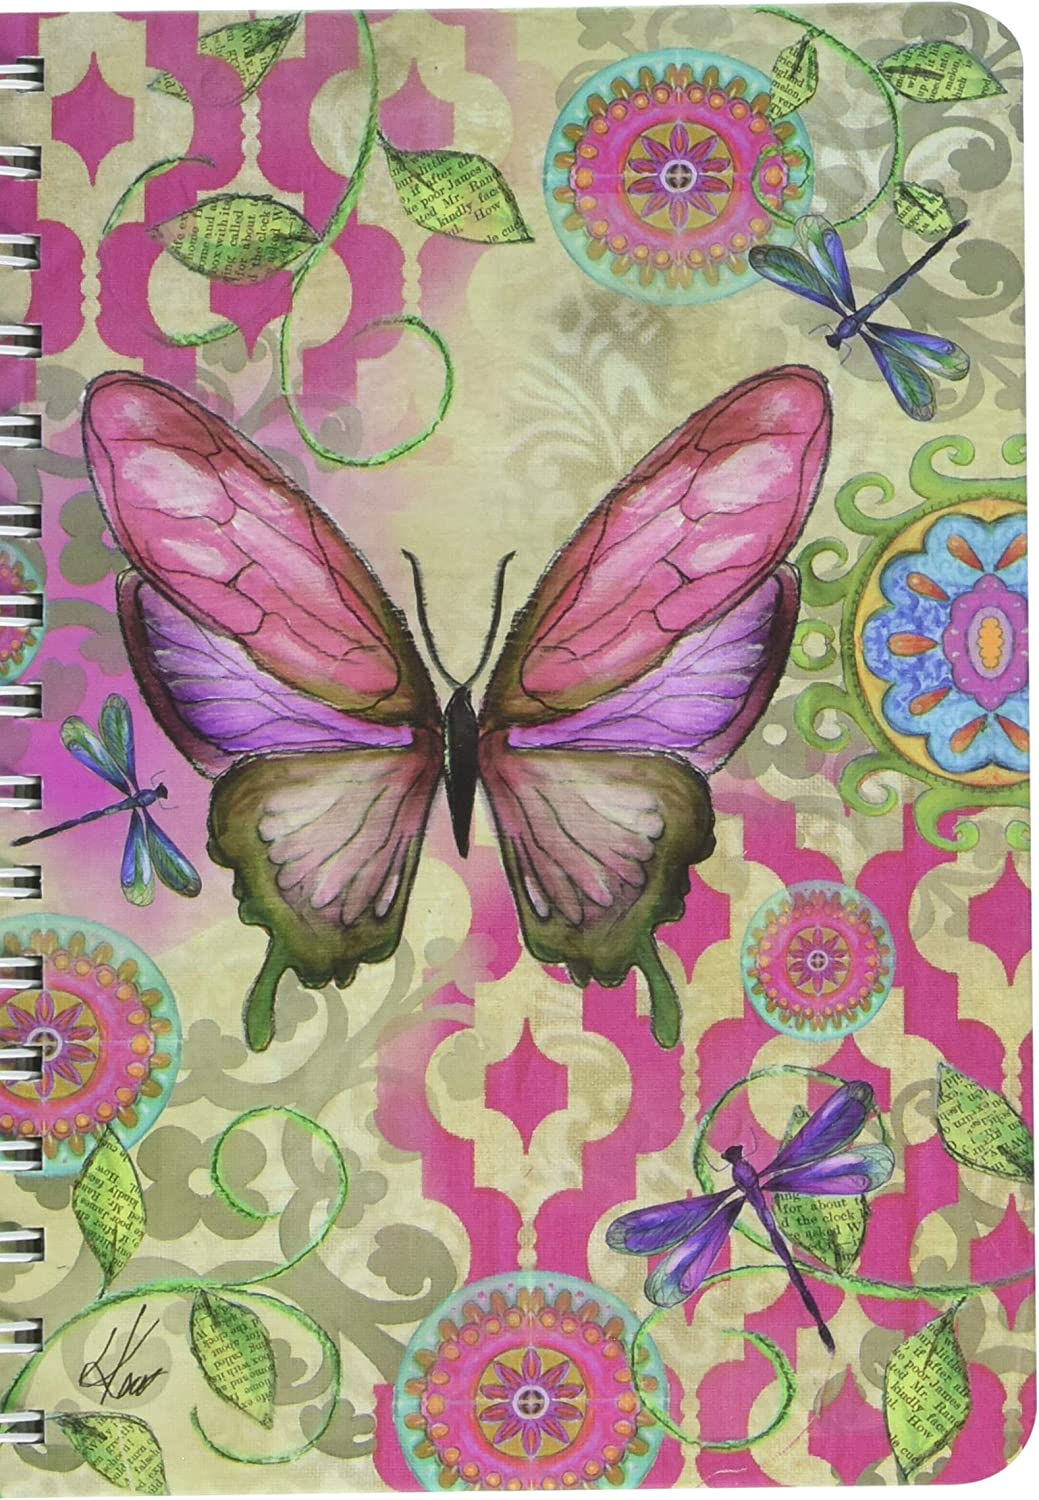 1350019 Lang Allow The Unfolding Spiral Journal by Kelly Rae Roberts